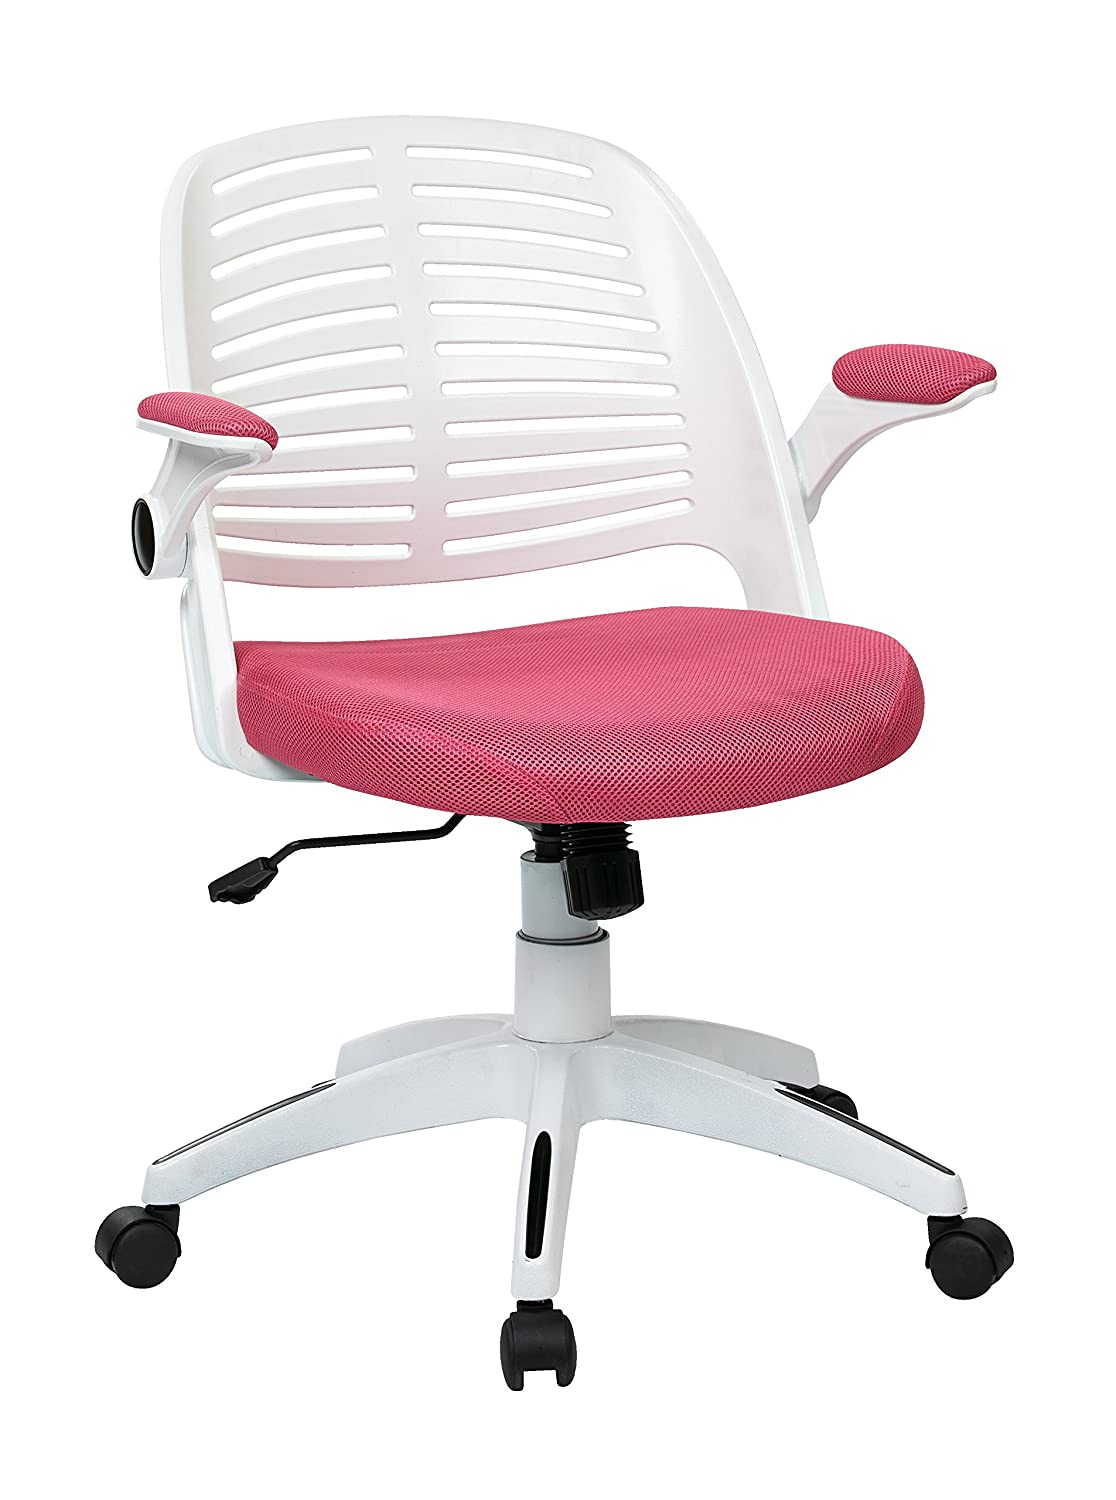 chairs astonishing articles for office chair inspiration label pink upright desk ideas tag hot contemporary australia with